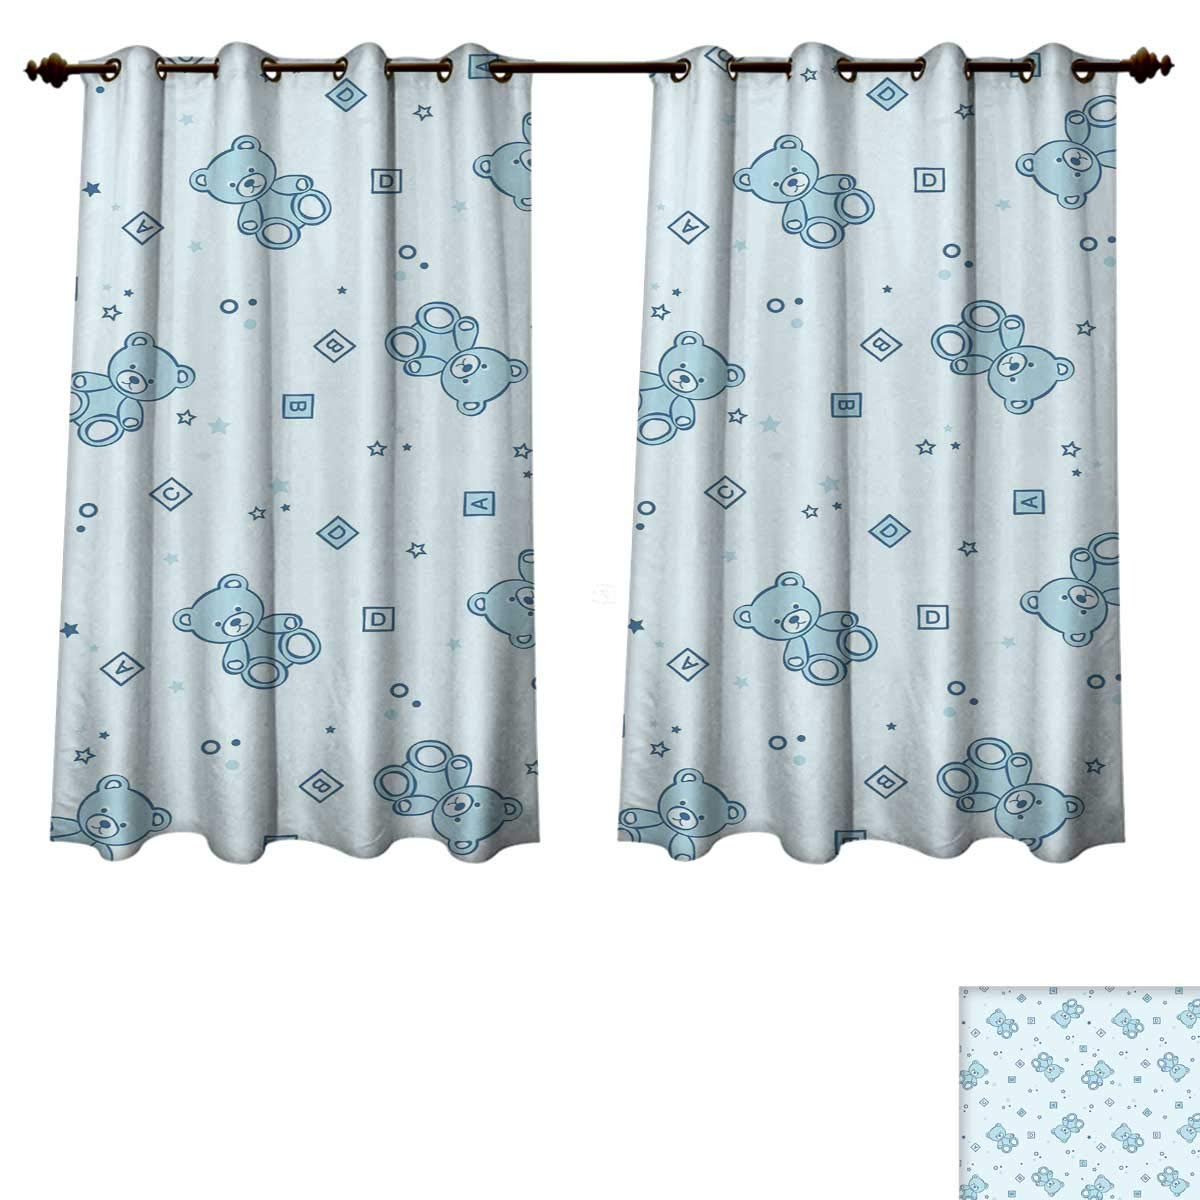 RuppertTextile Nursery Bedroom Thermal Blackout Curtains Set of Patchwork Quilt Style Owls on Branches with Green Leaves Bird Mascots Print Drapes for Living Room Multicolor W52 x L63 inch